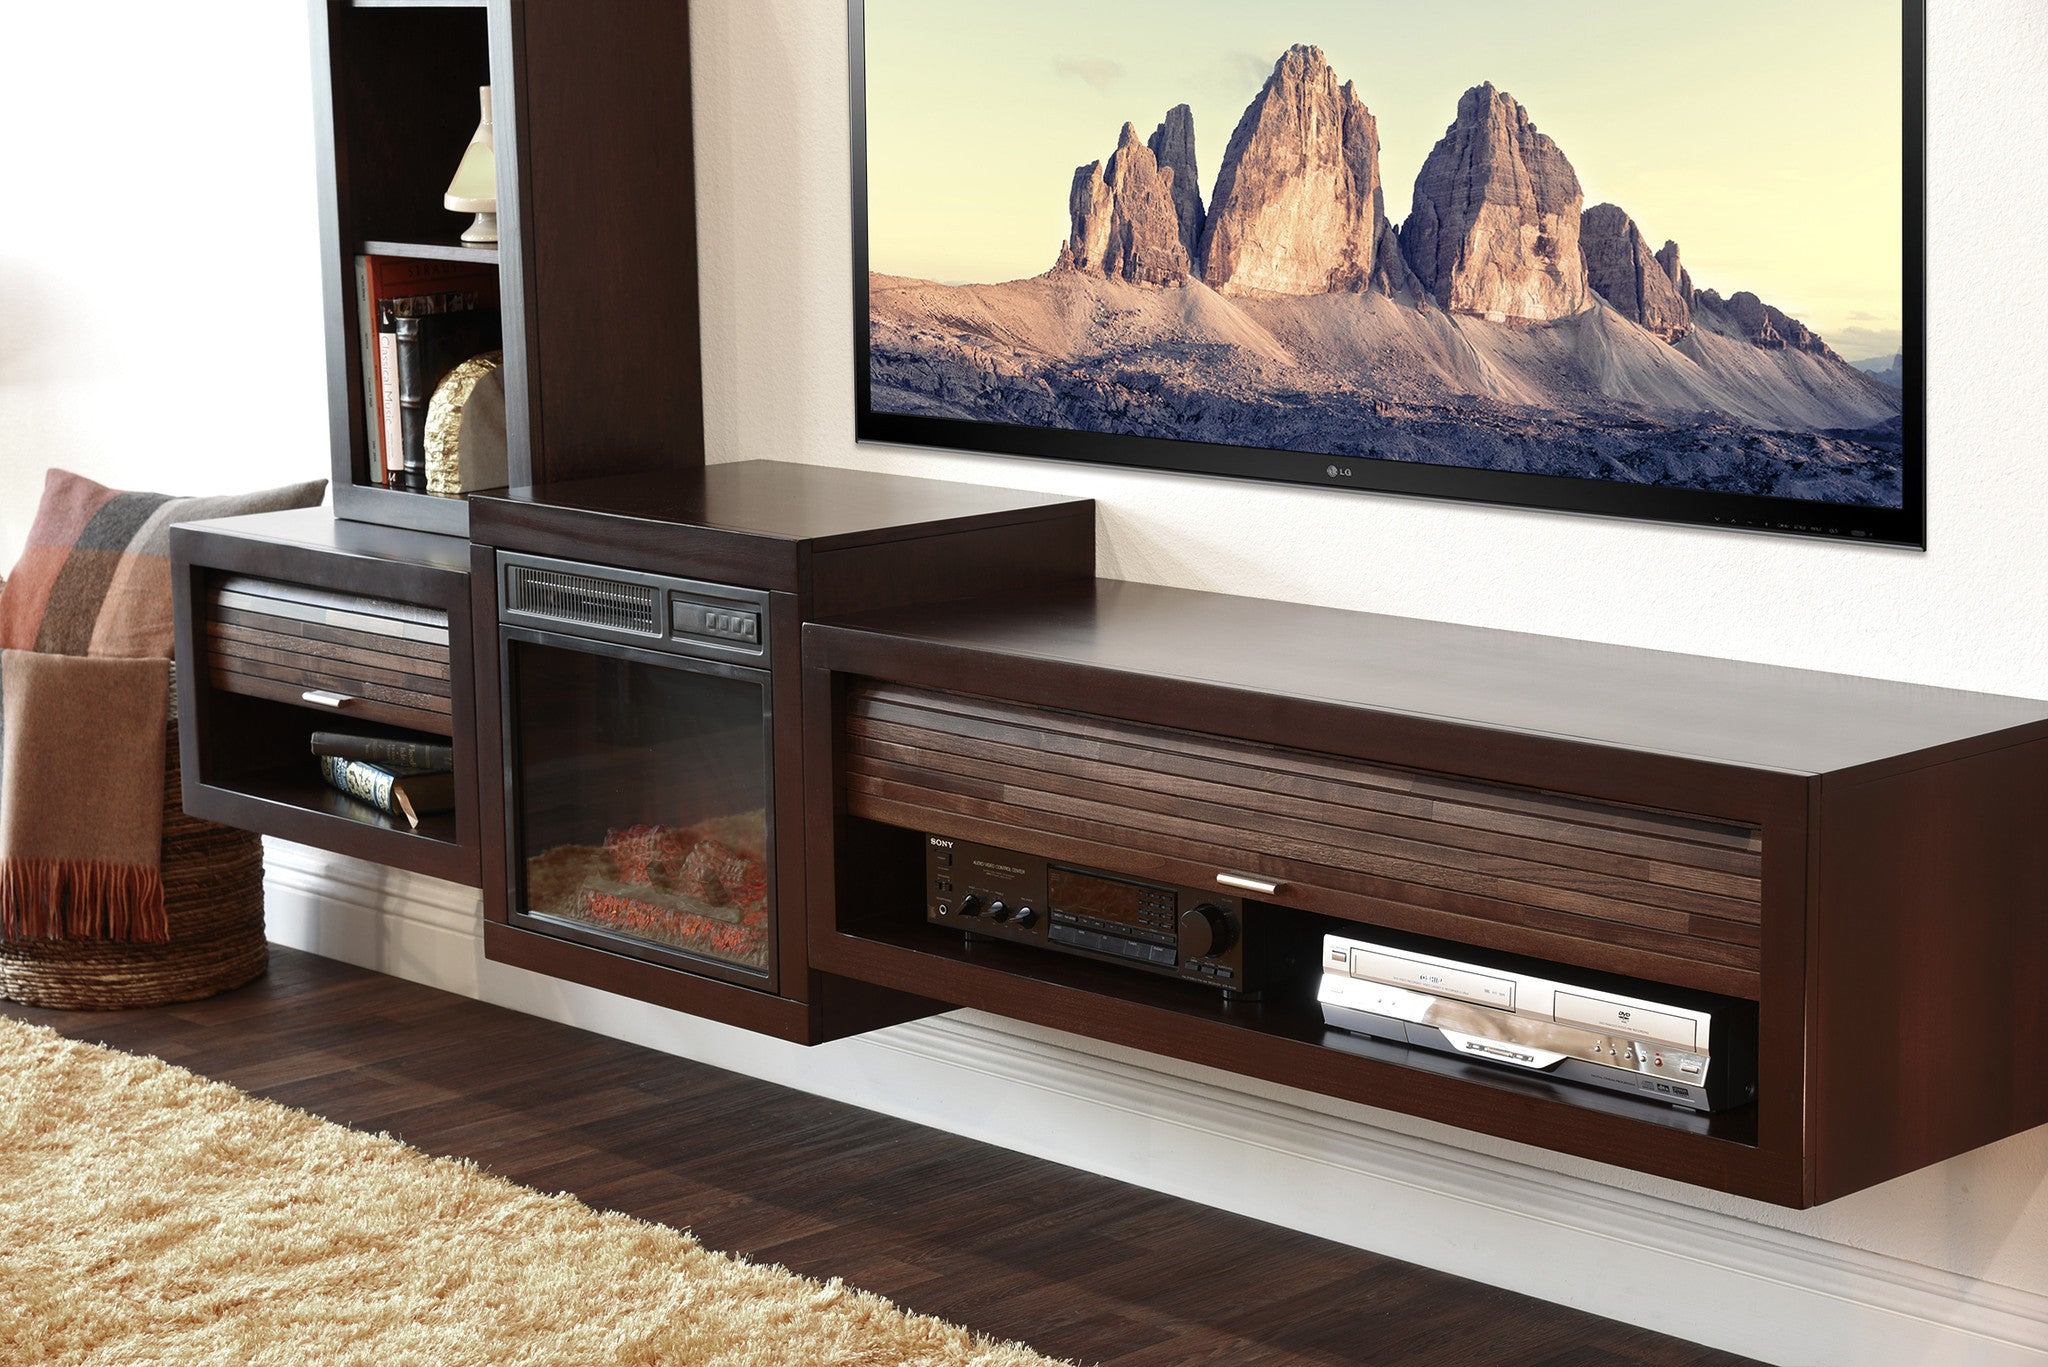 Save $$ With This Bundle! Floating TV Stand With Electric Fireplace The Eco Geo is a unique eco-friendly 4 piece modular entertainment console which is handcrafted of solid Poplar and genuine Maple veneers.   This bundle includes our electric fireplace